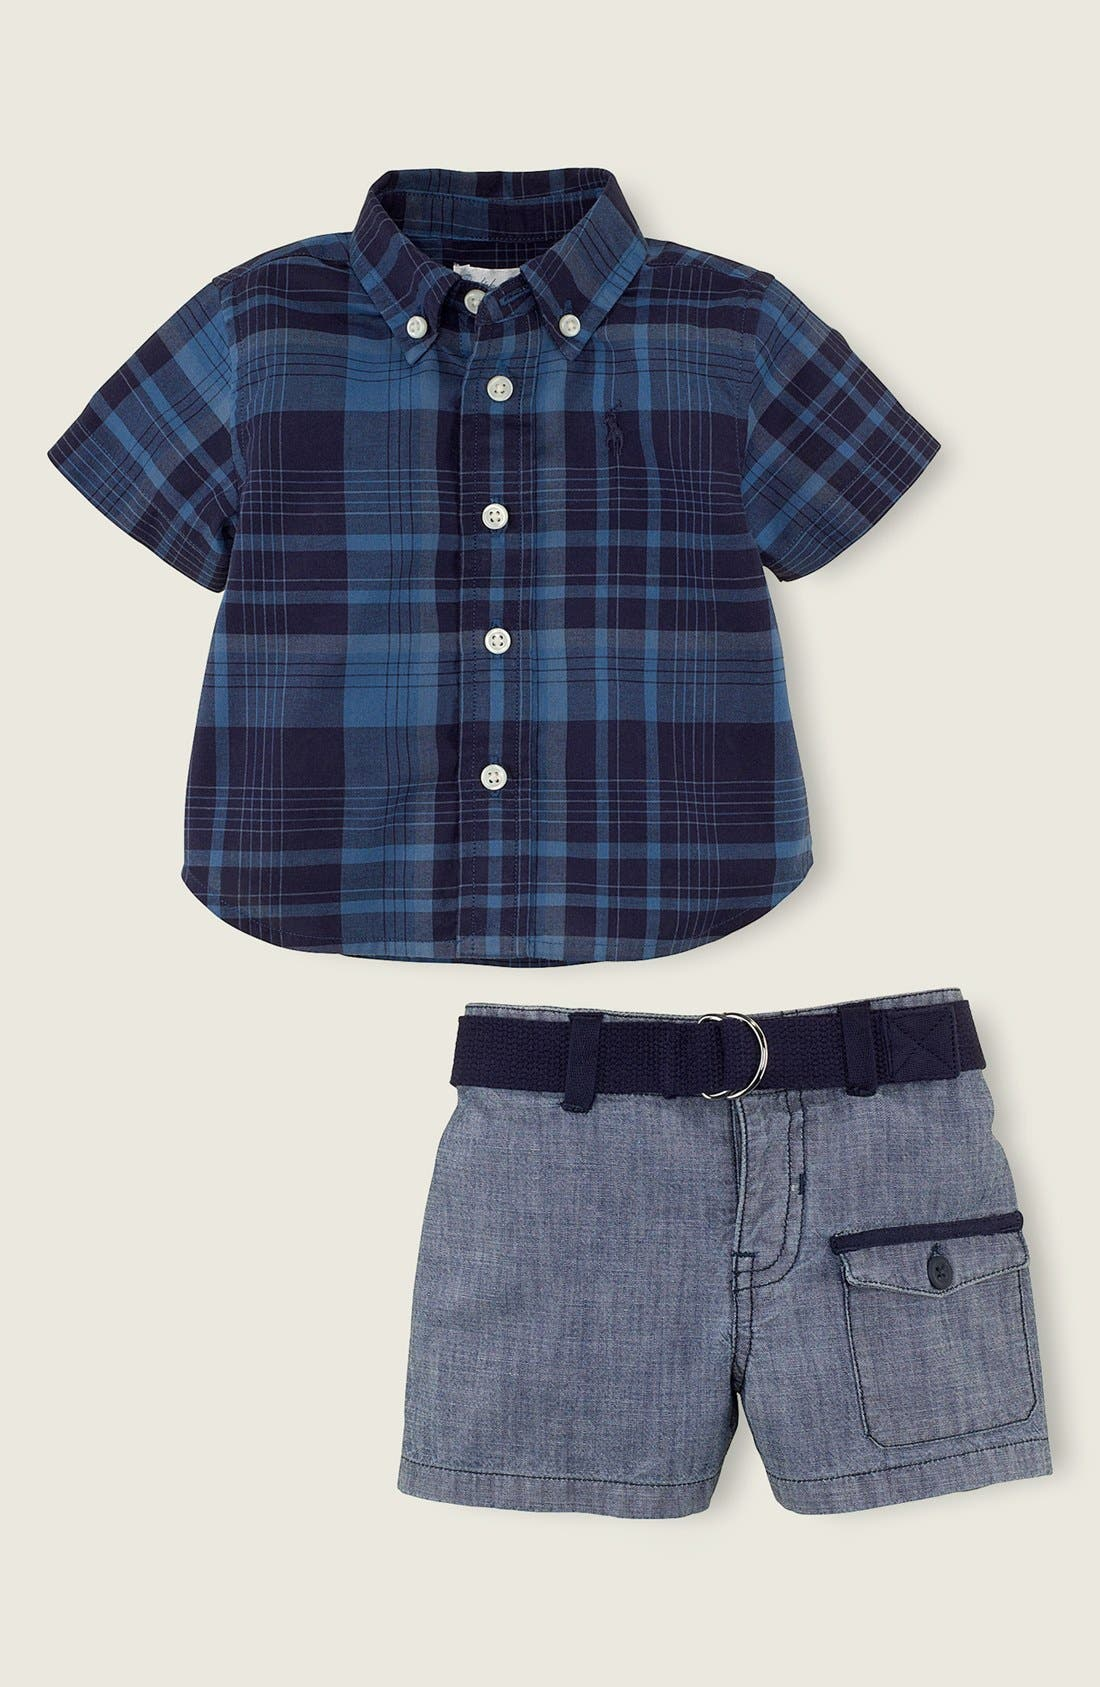 Alternate Image 1 Selected - Ralph Lauren Plaid Shirt & Shorts (Baby Boys)